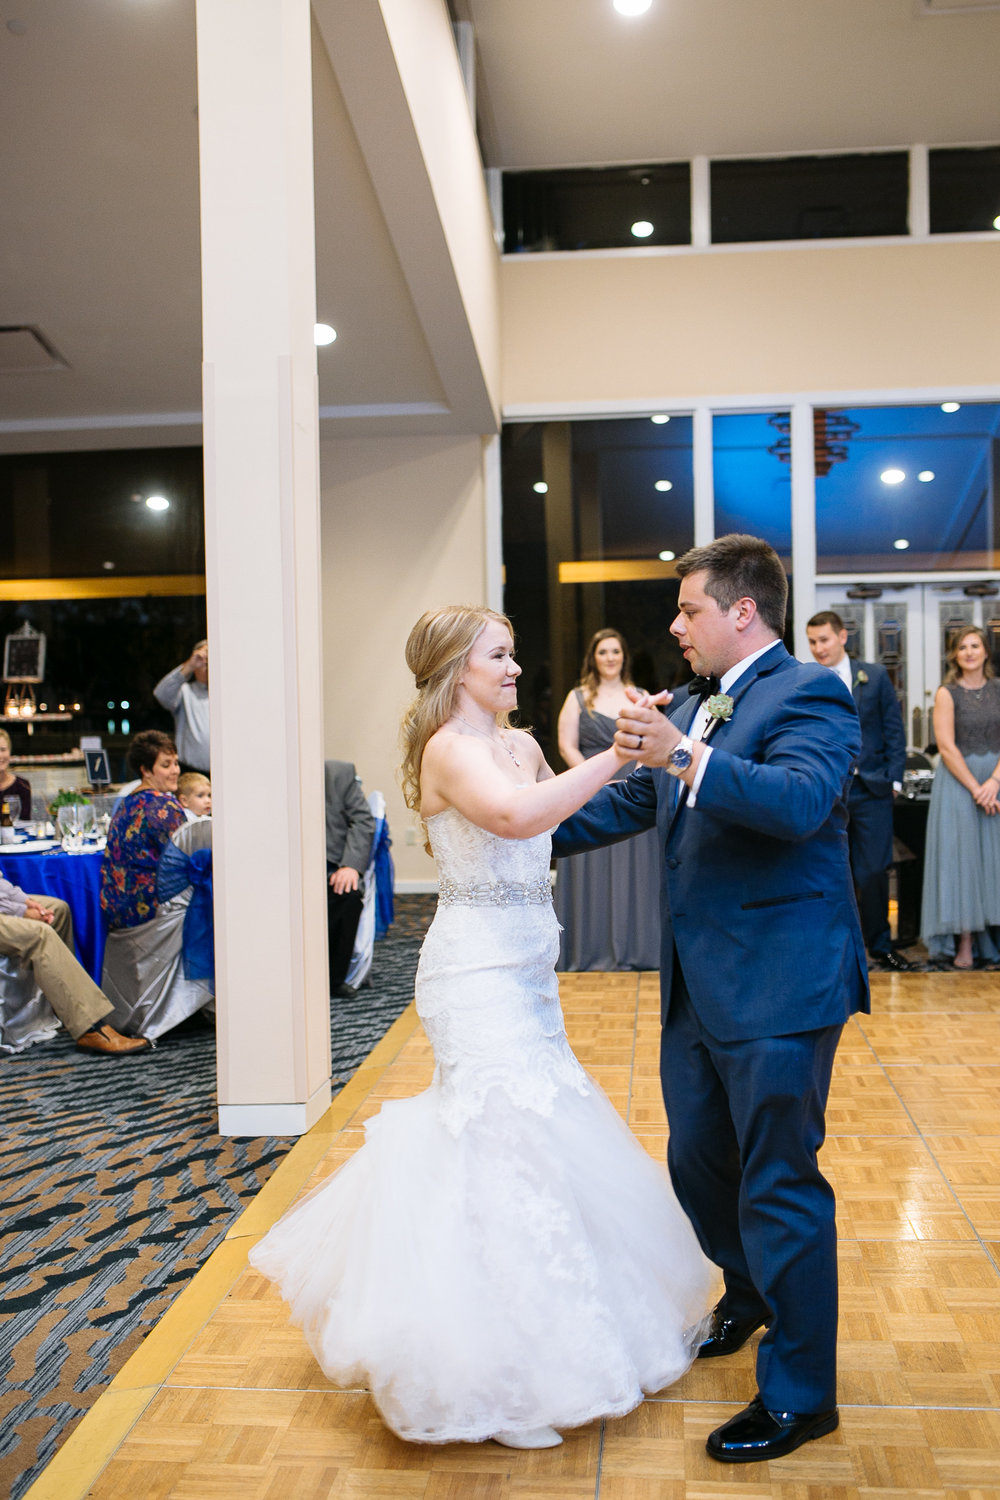 Sharing their first dance | Woodlands Resort Weddings